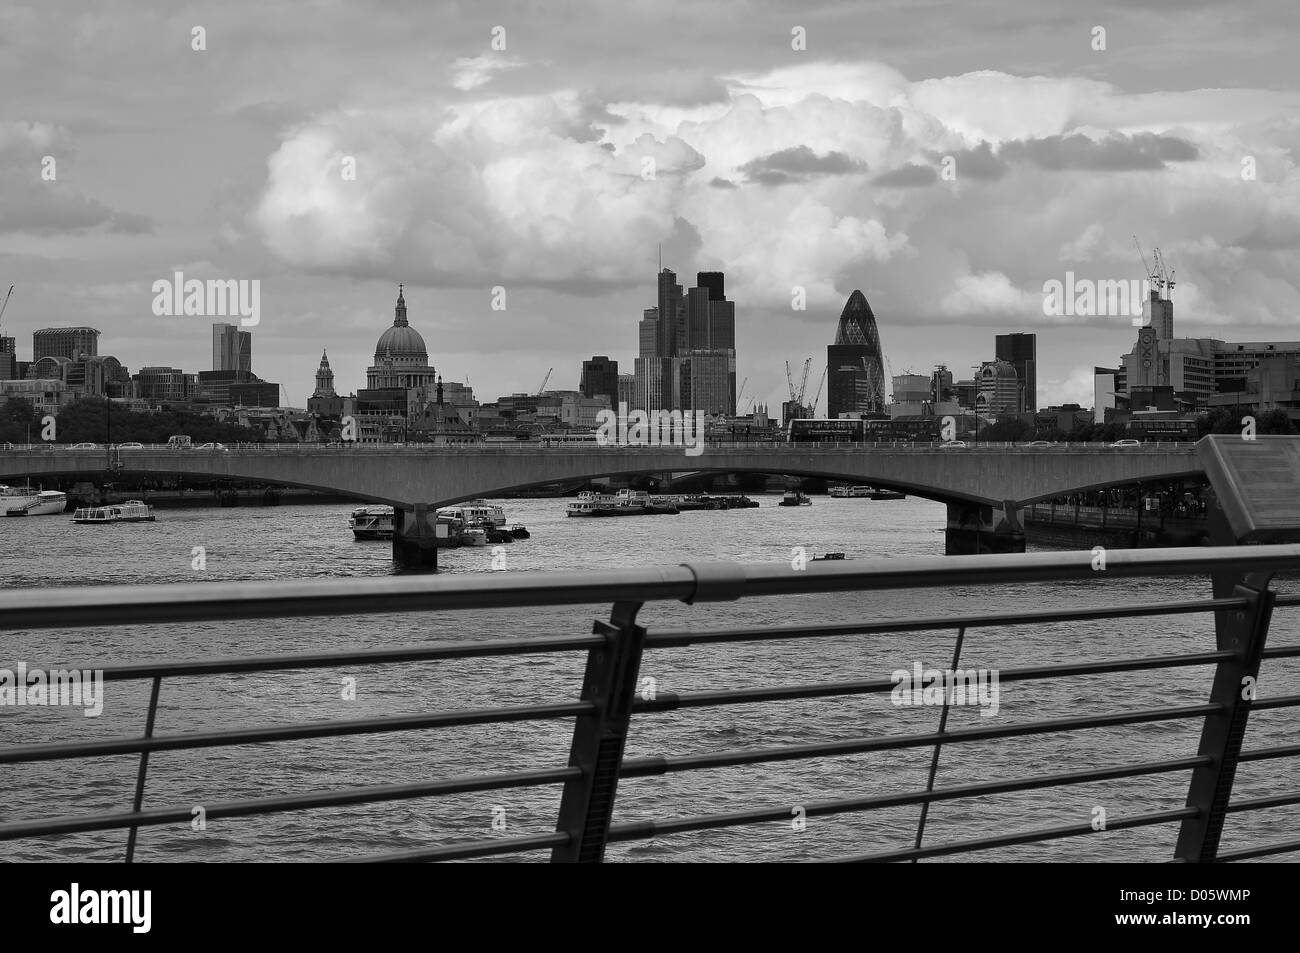 View of the Thames, St Paul's and the City of London from Hungerford bridge - Stock Image